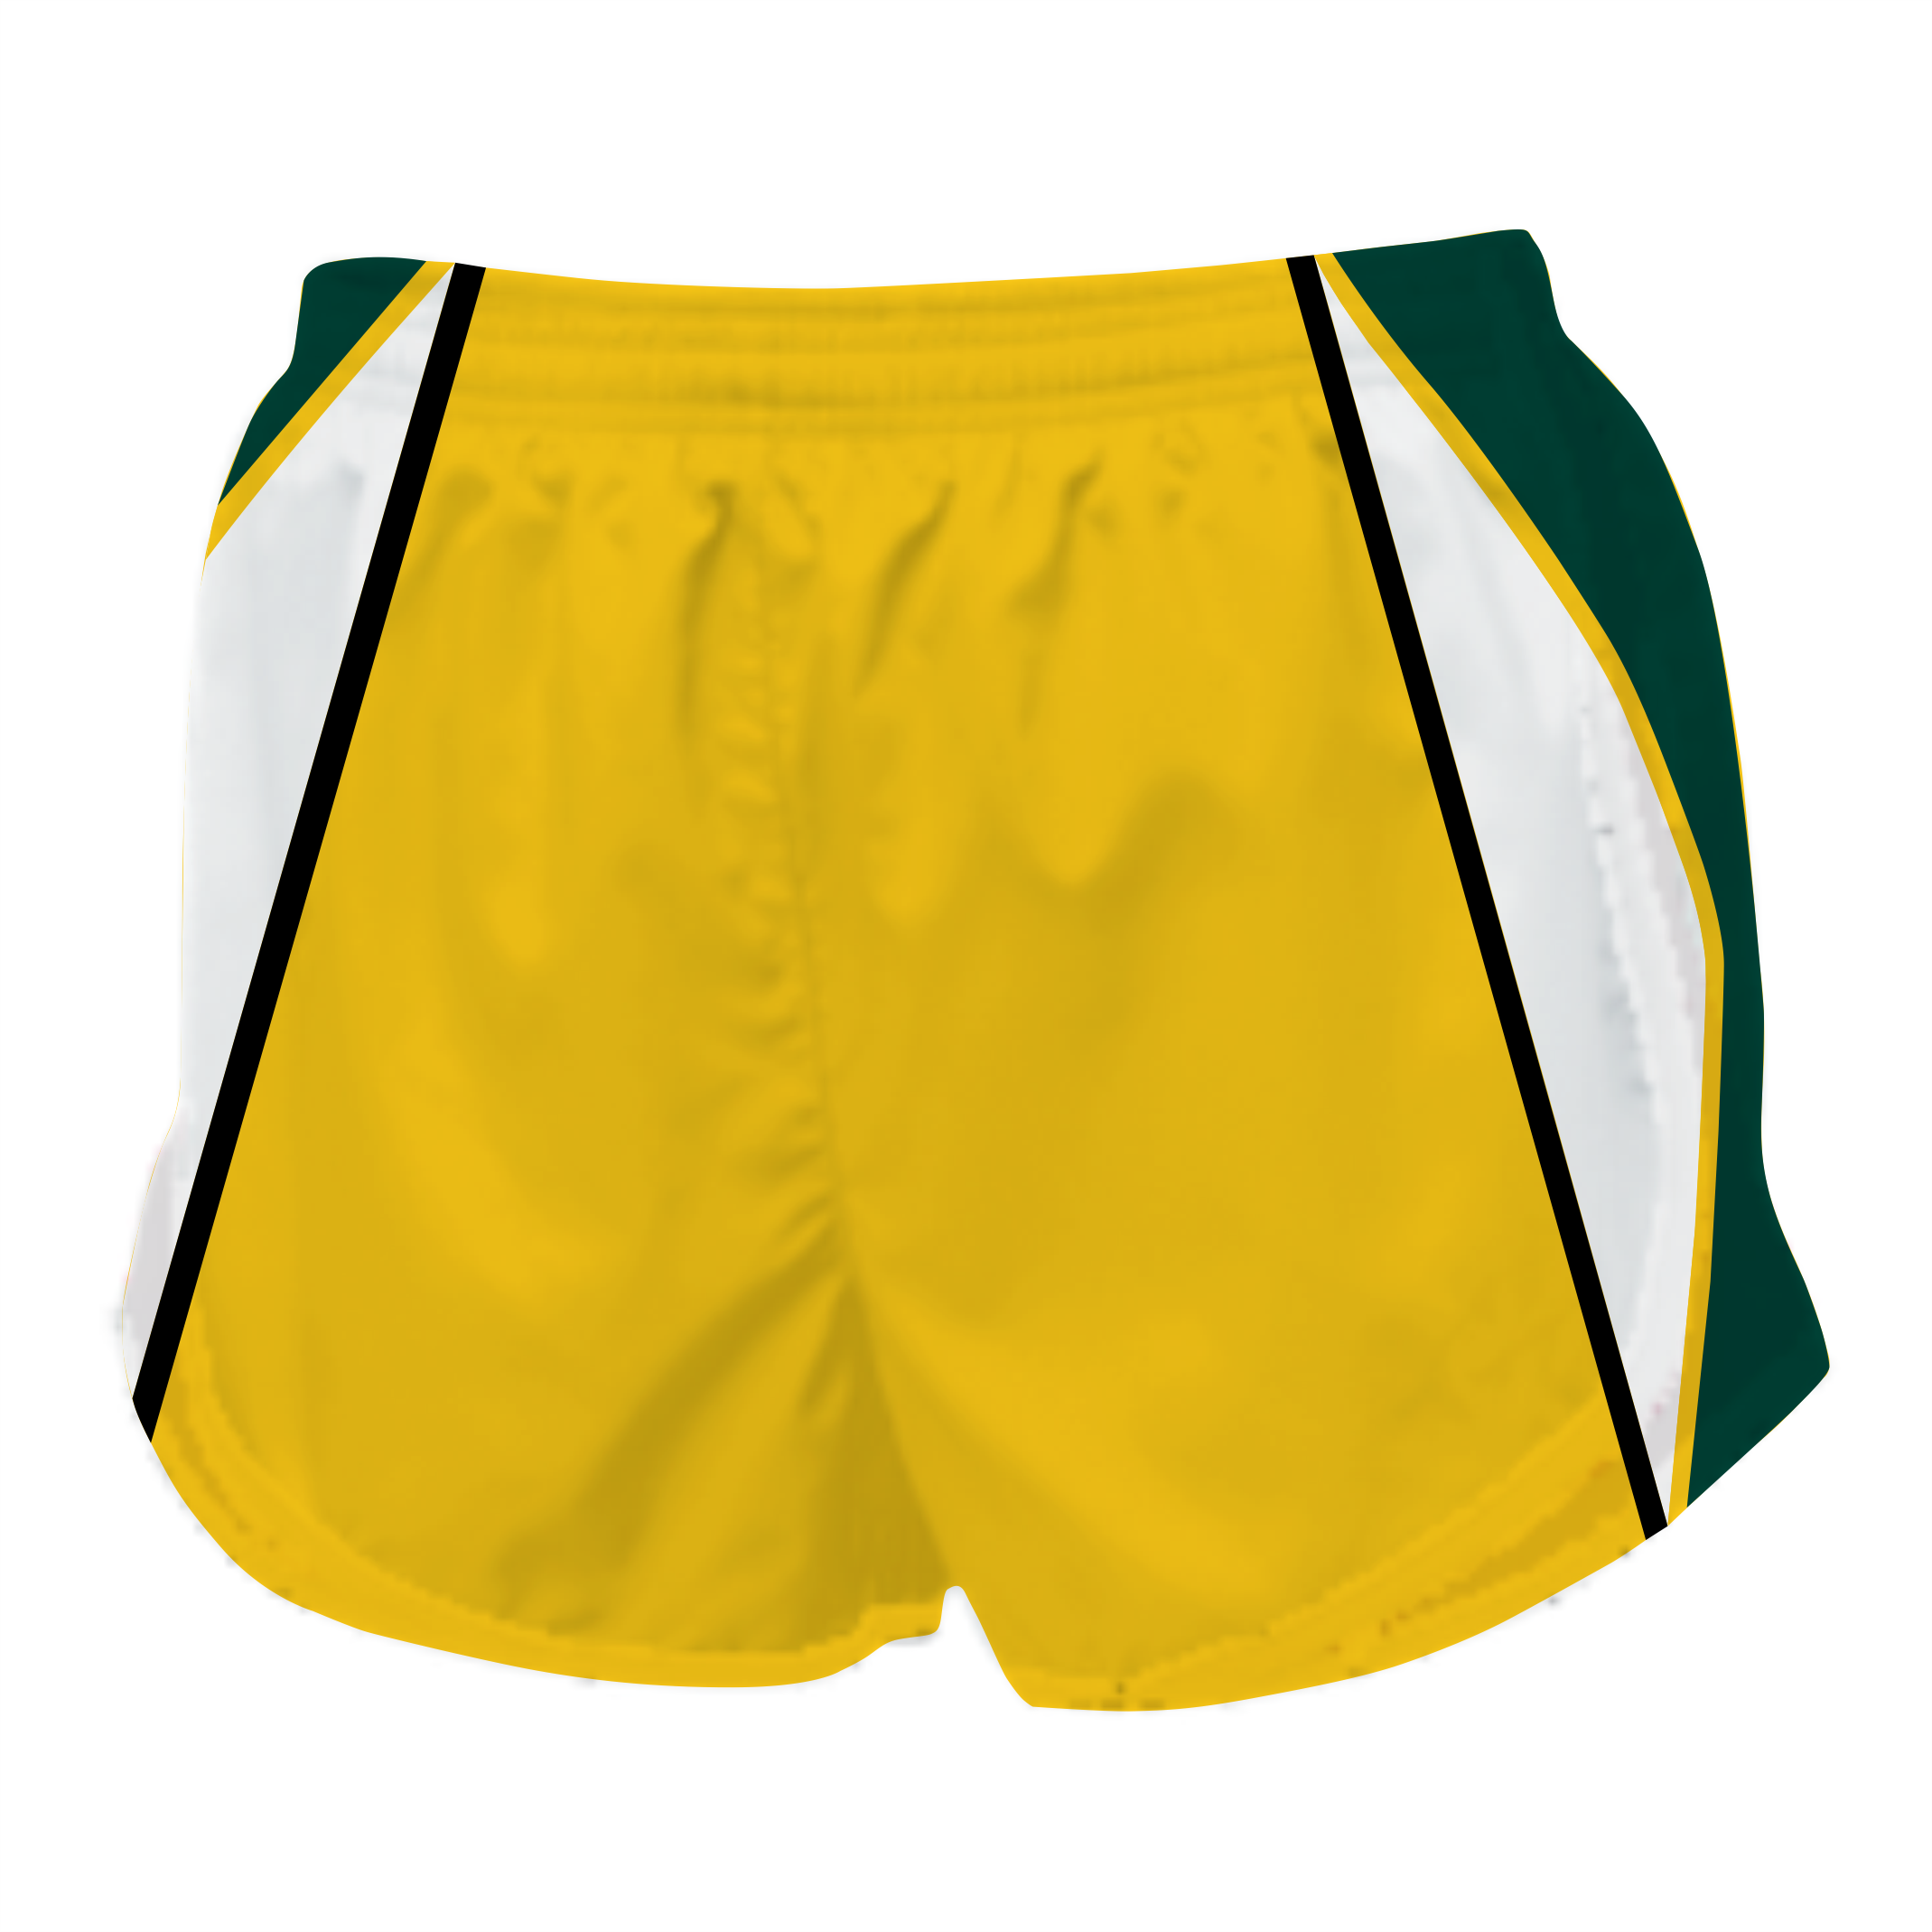 Panelled Zuco running shorts - Mick